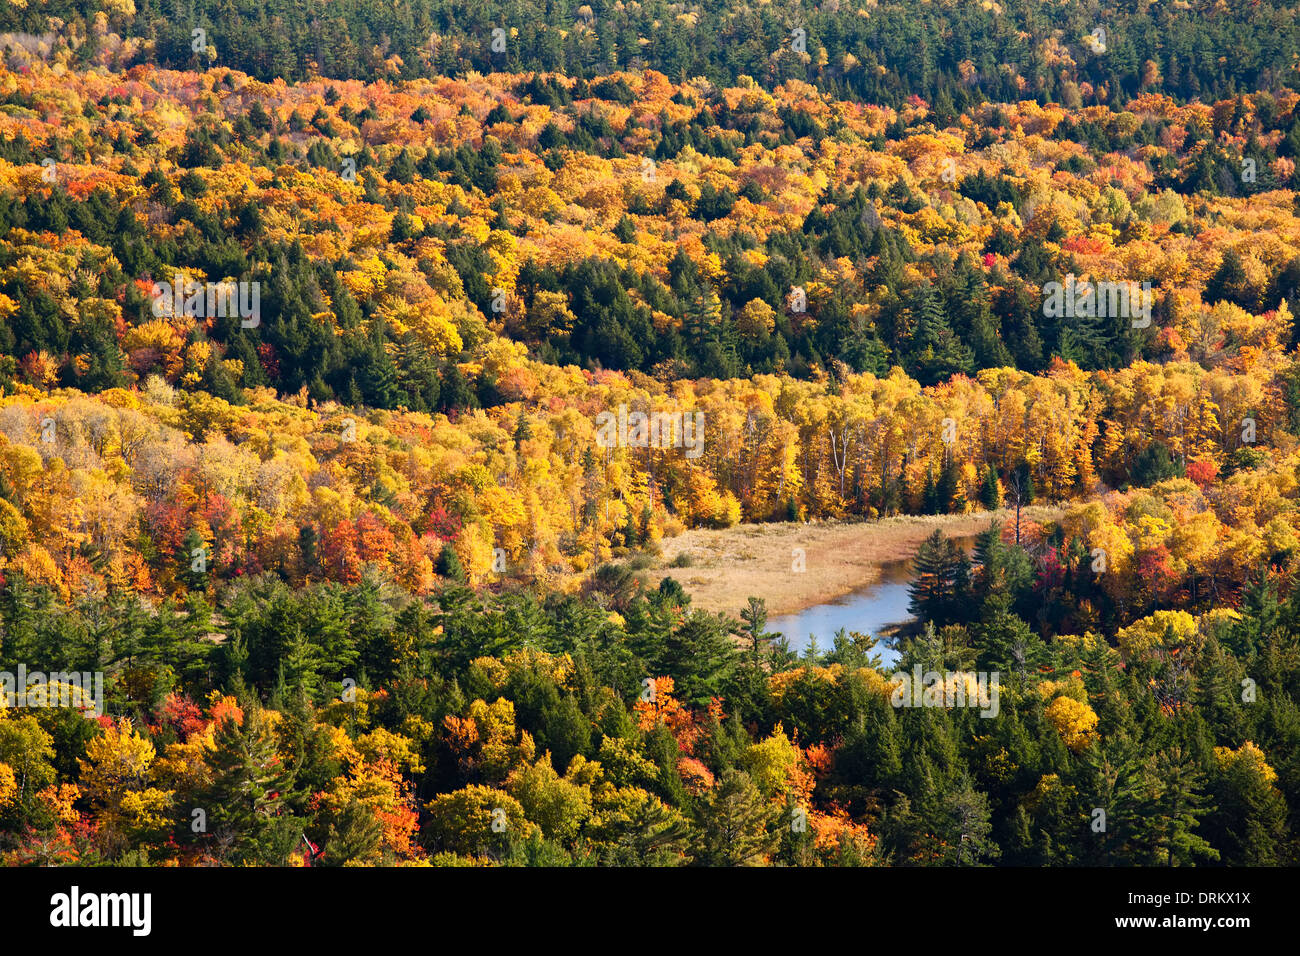 Wonderful yellows and oranges grace the tree canopy in Killarney Provincial Park, Ontario, Canada. - Stock Image